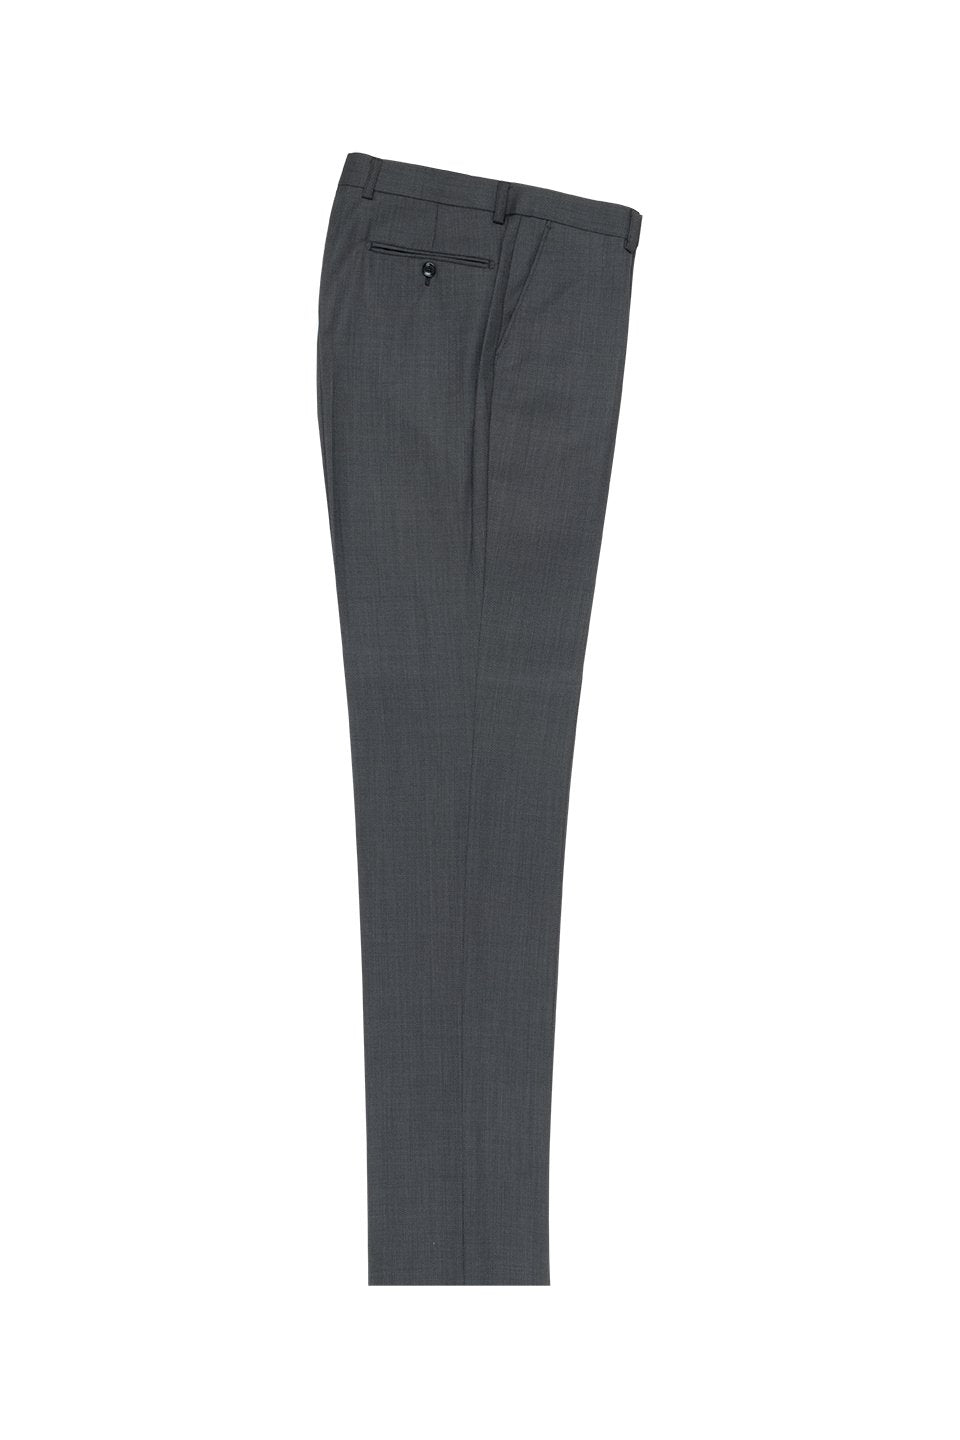 Tiglio Dark Grey Birdseye Flat Front Dress Pants